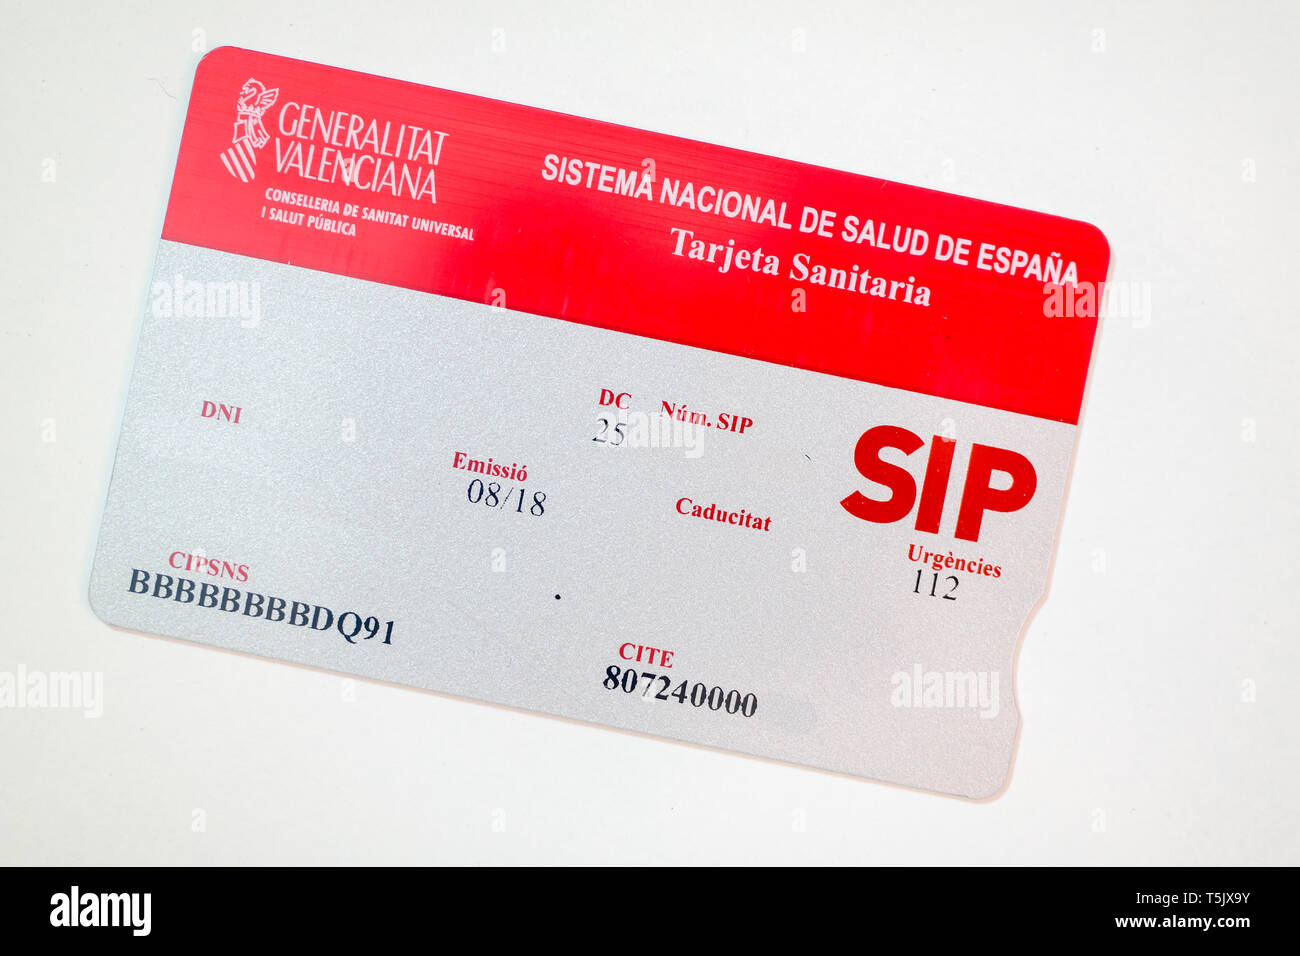 SIP Health Card of Spain - Stock Image